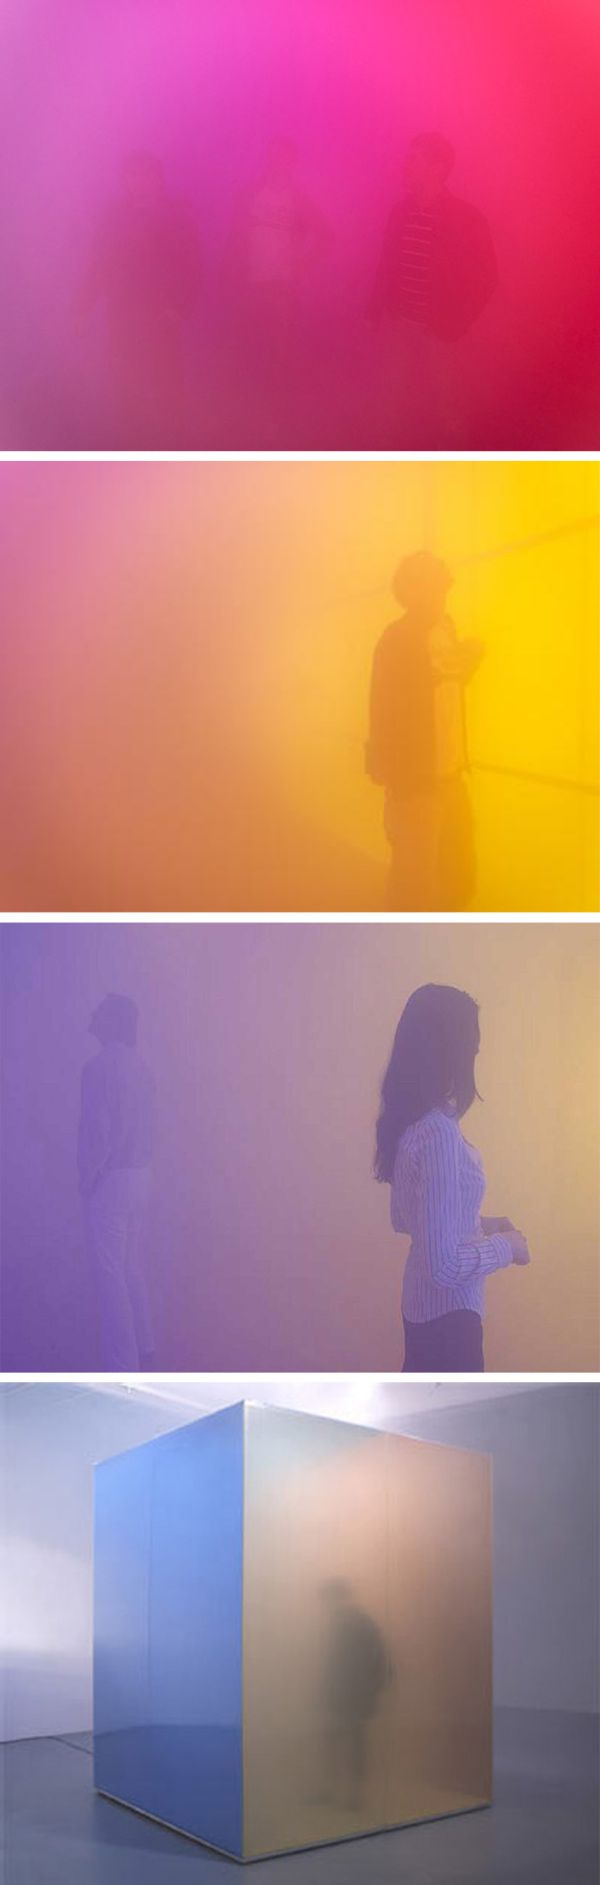 """Artist Ann Veronica Janssens constructs sensorial sculptures of polycarbonate walls covered by transparent films which are filled with dense mist.  Visitors to her """"spatio-temporal experiences"""" find their perception saturated and transformed by the colorful fog."""